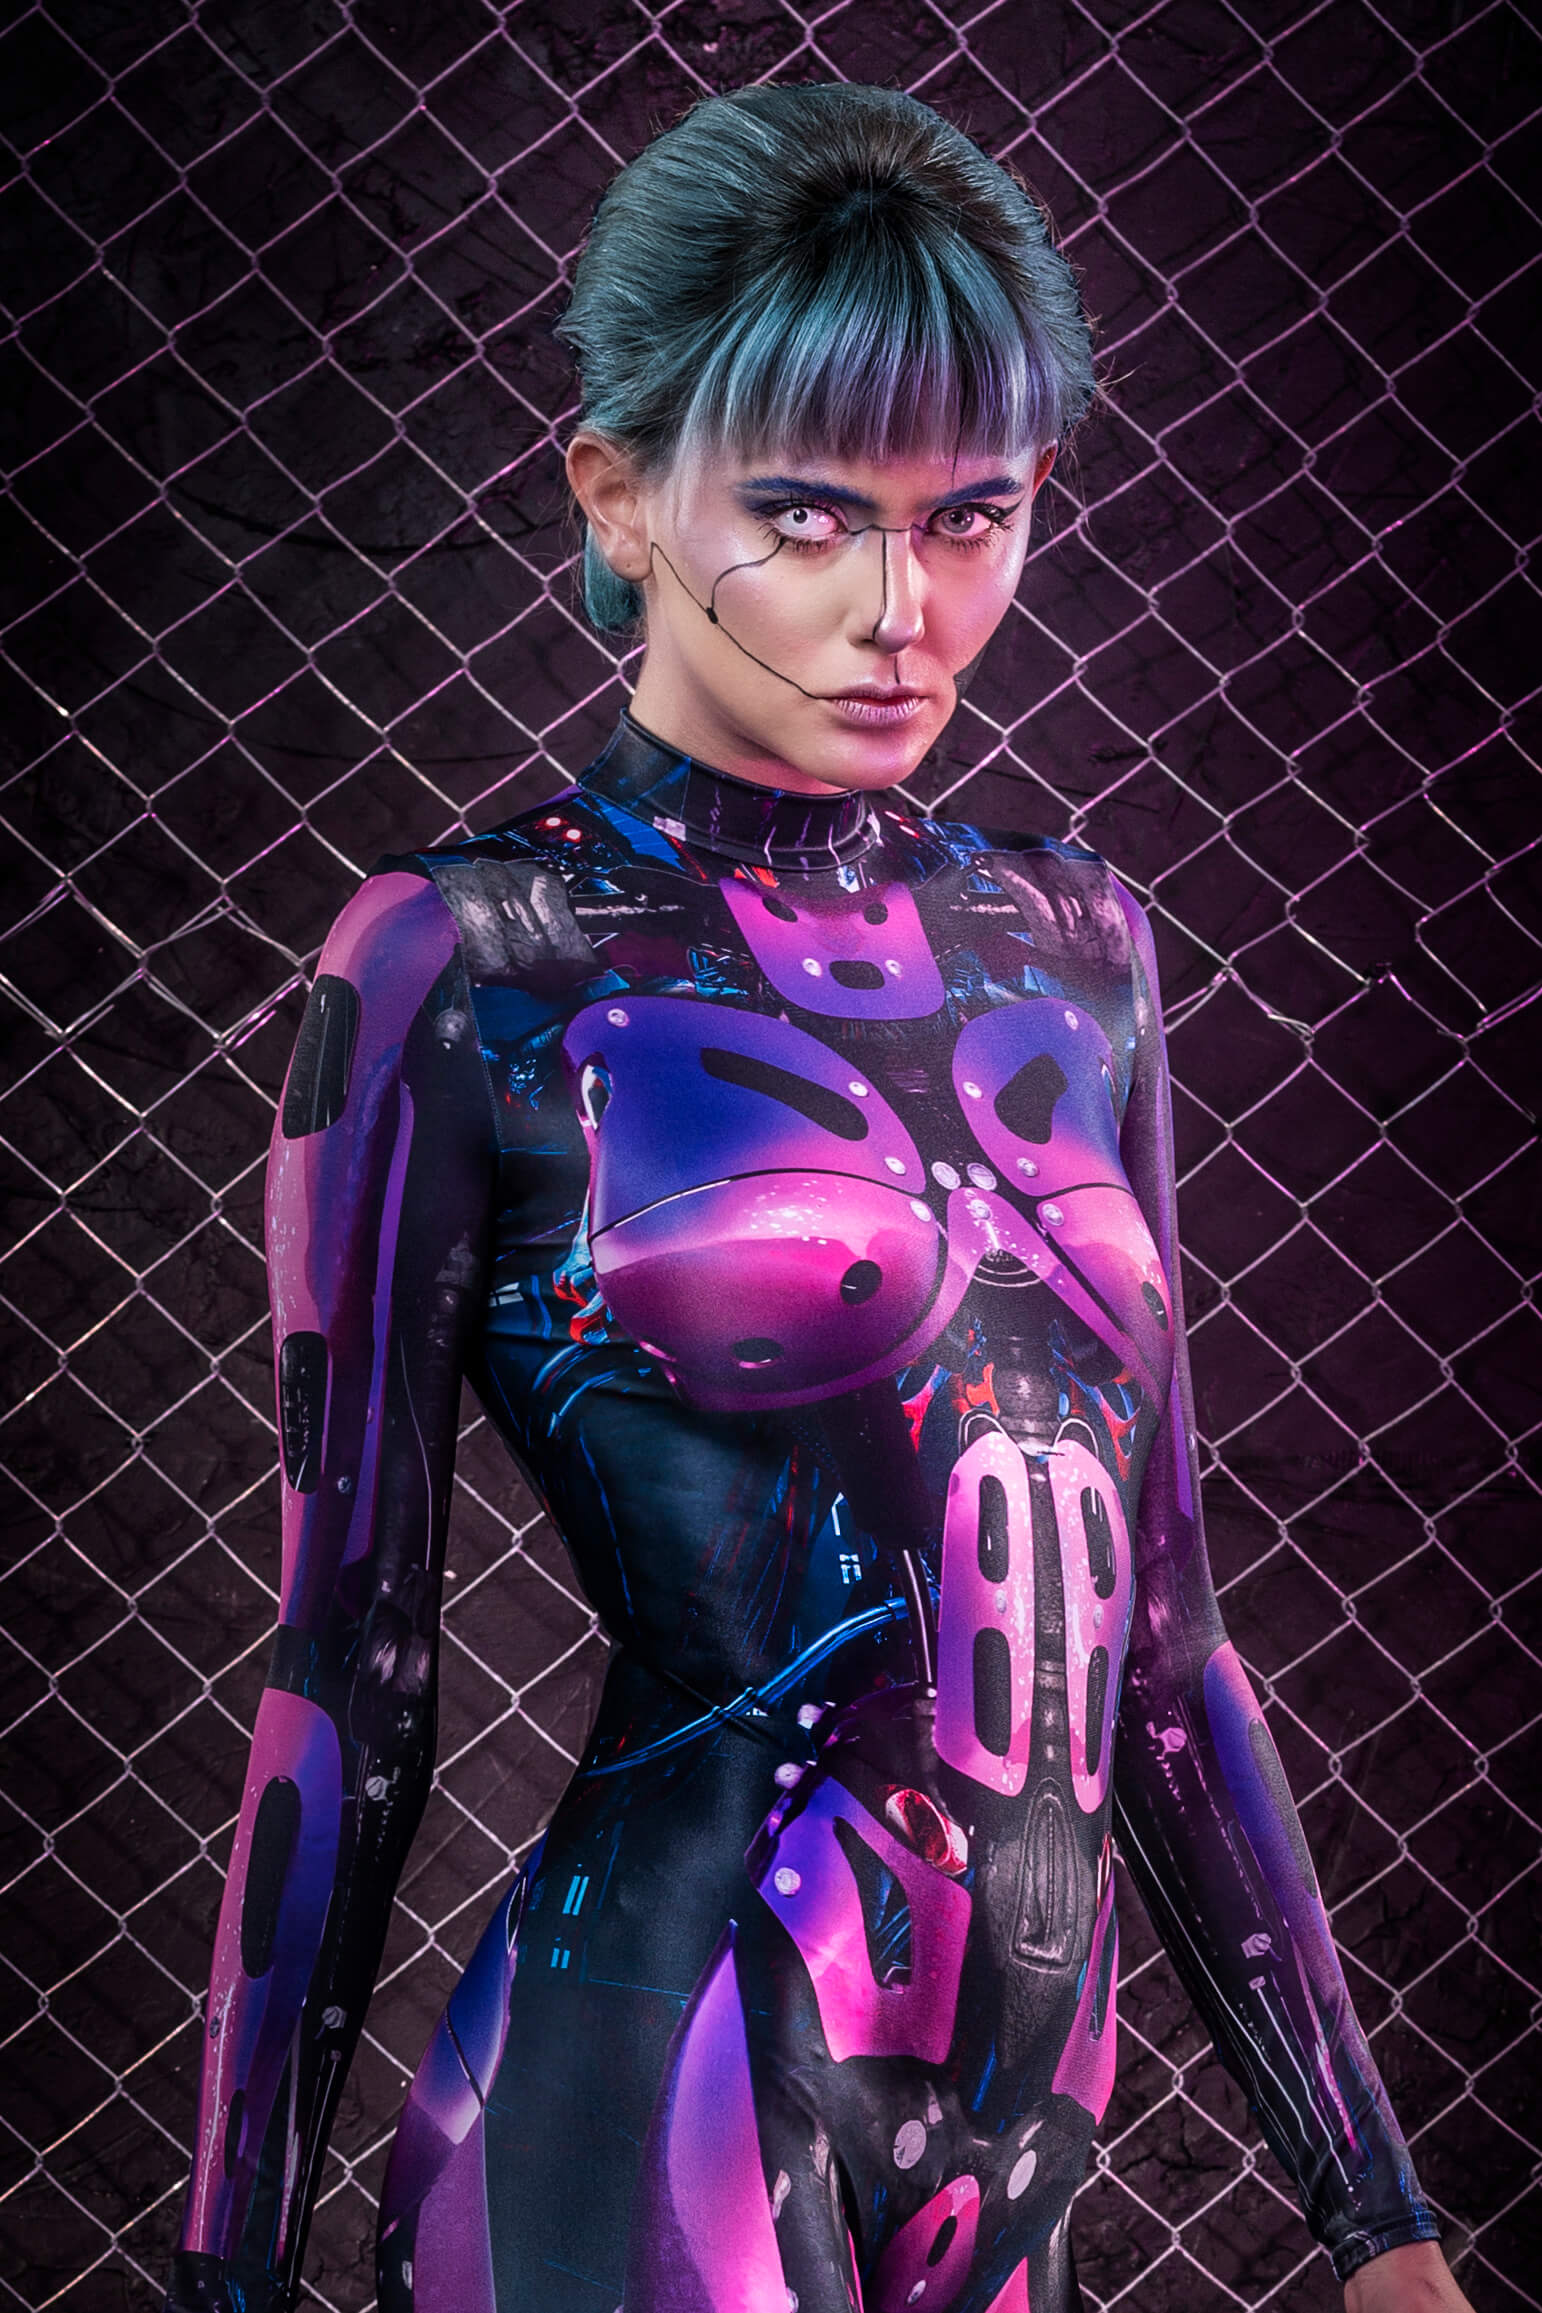 Halloween Costumes 2019 Women's - Cyberpunk Cosplay Robot Costume Adults